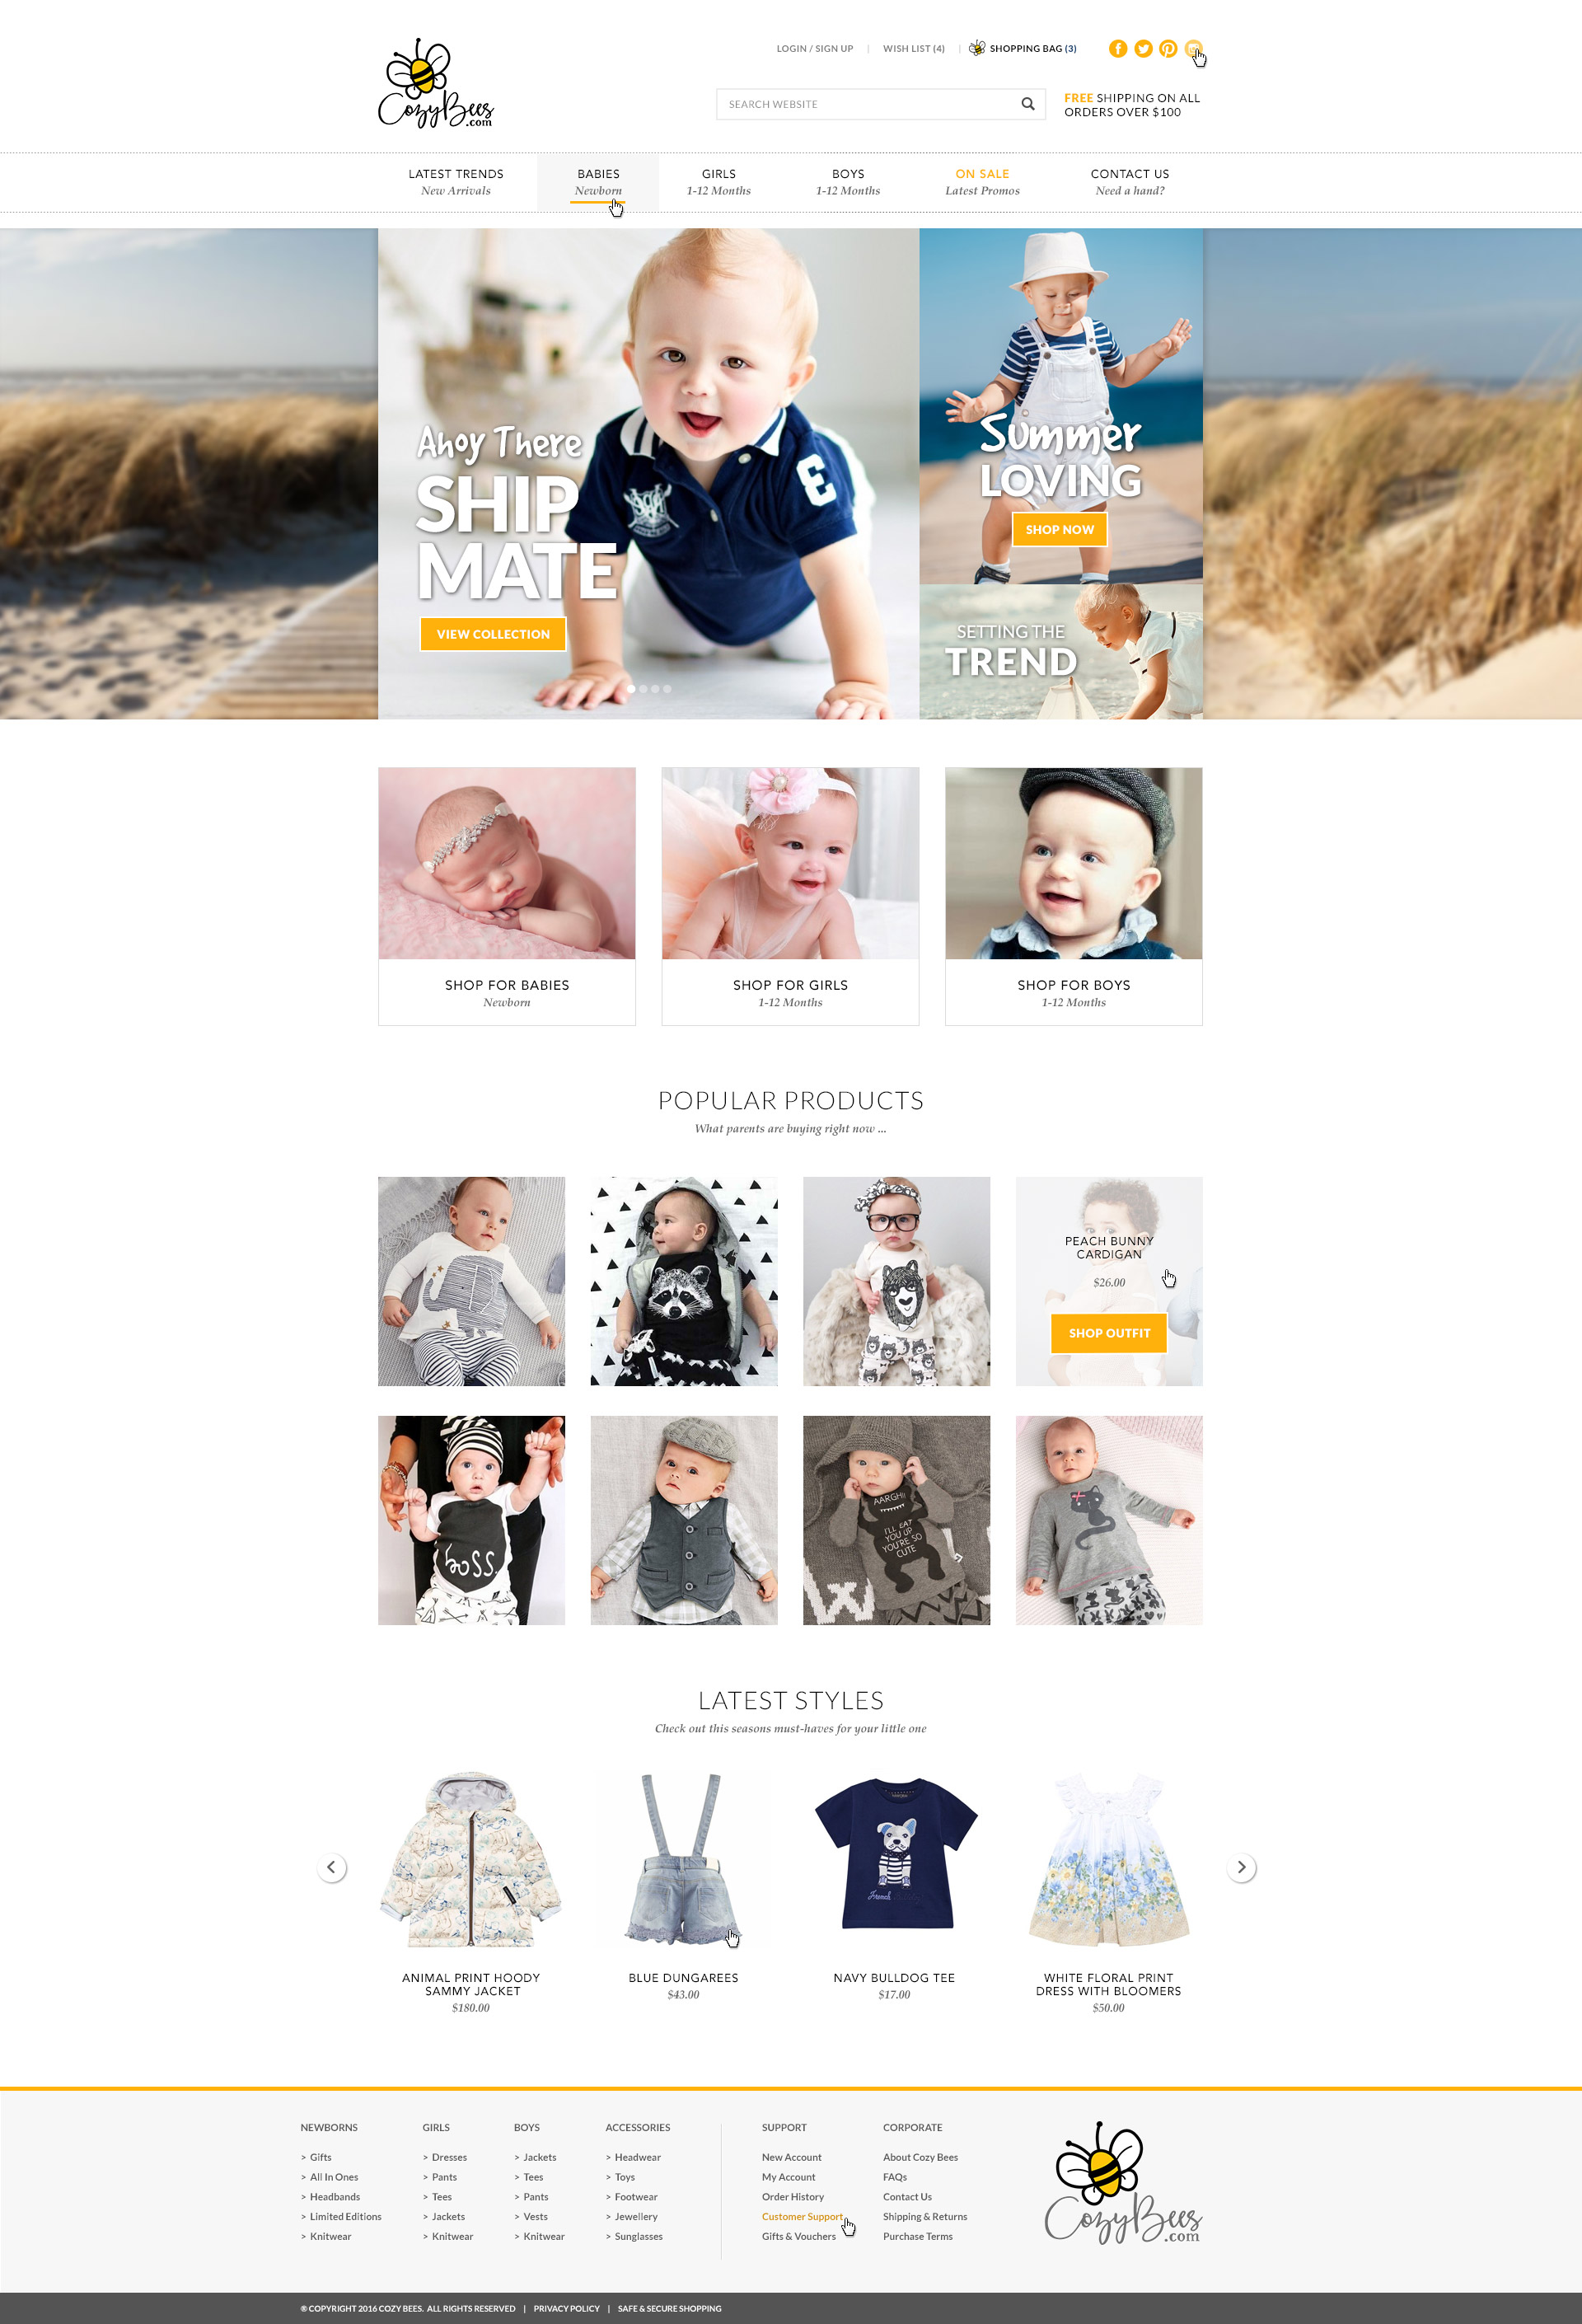 Website design concept for a baby clothing store